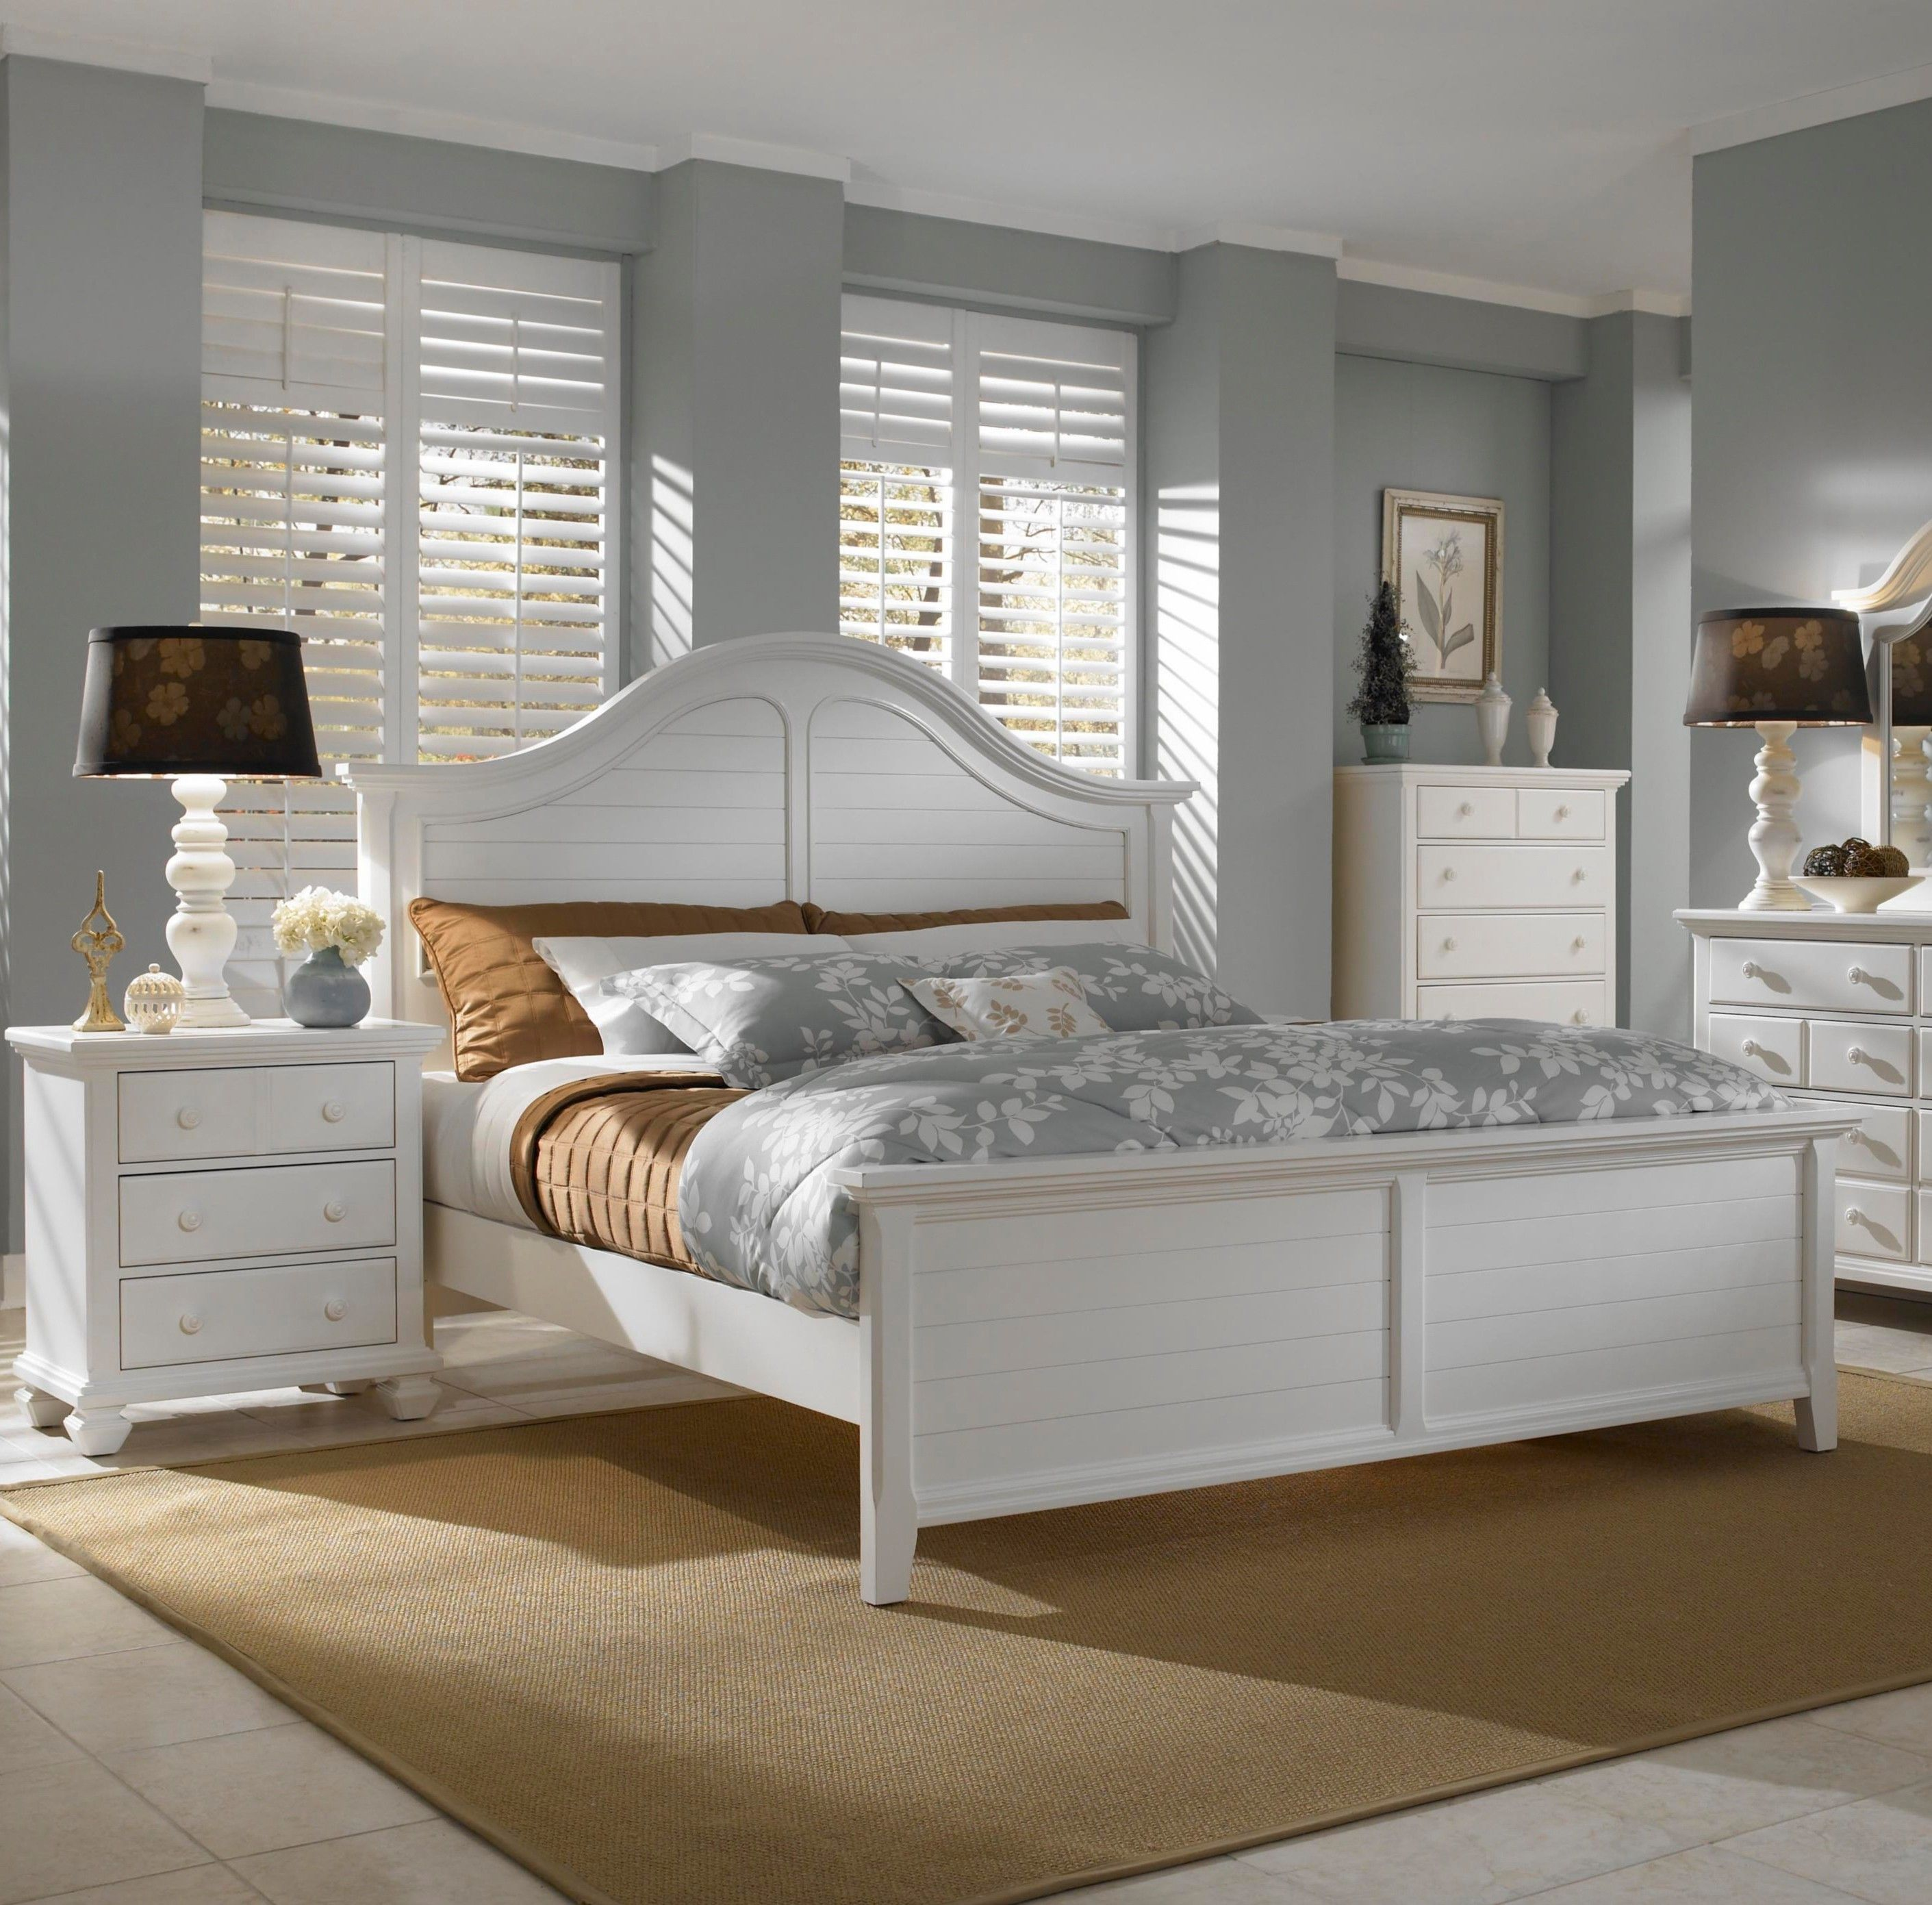 space saver bedroom furniture. Marvelous Bedroom Ideas Room Space Saving Furniture Design With White Curve Headboard Bed And Brown Bedding Saver O